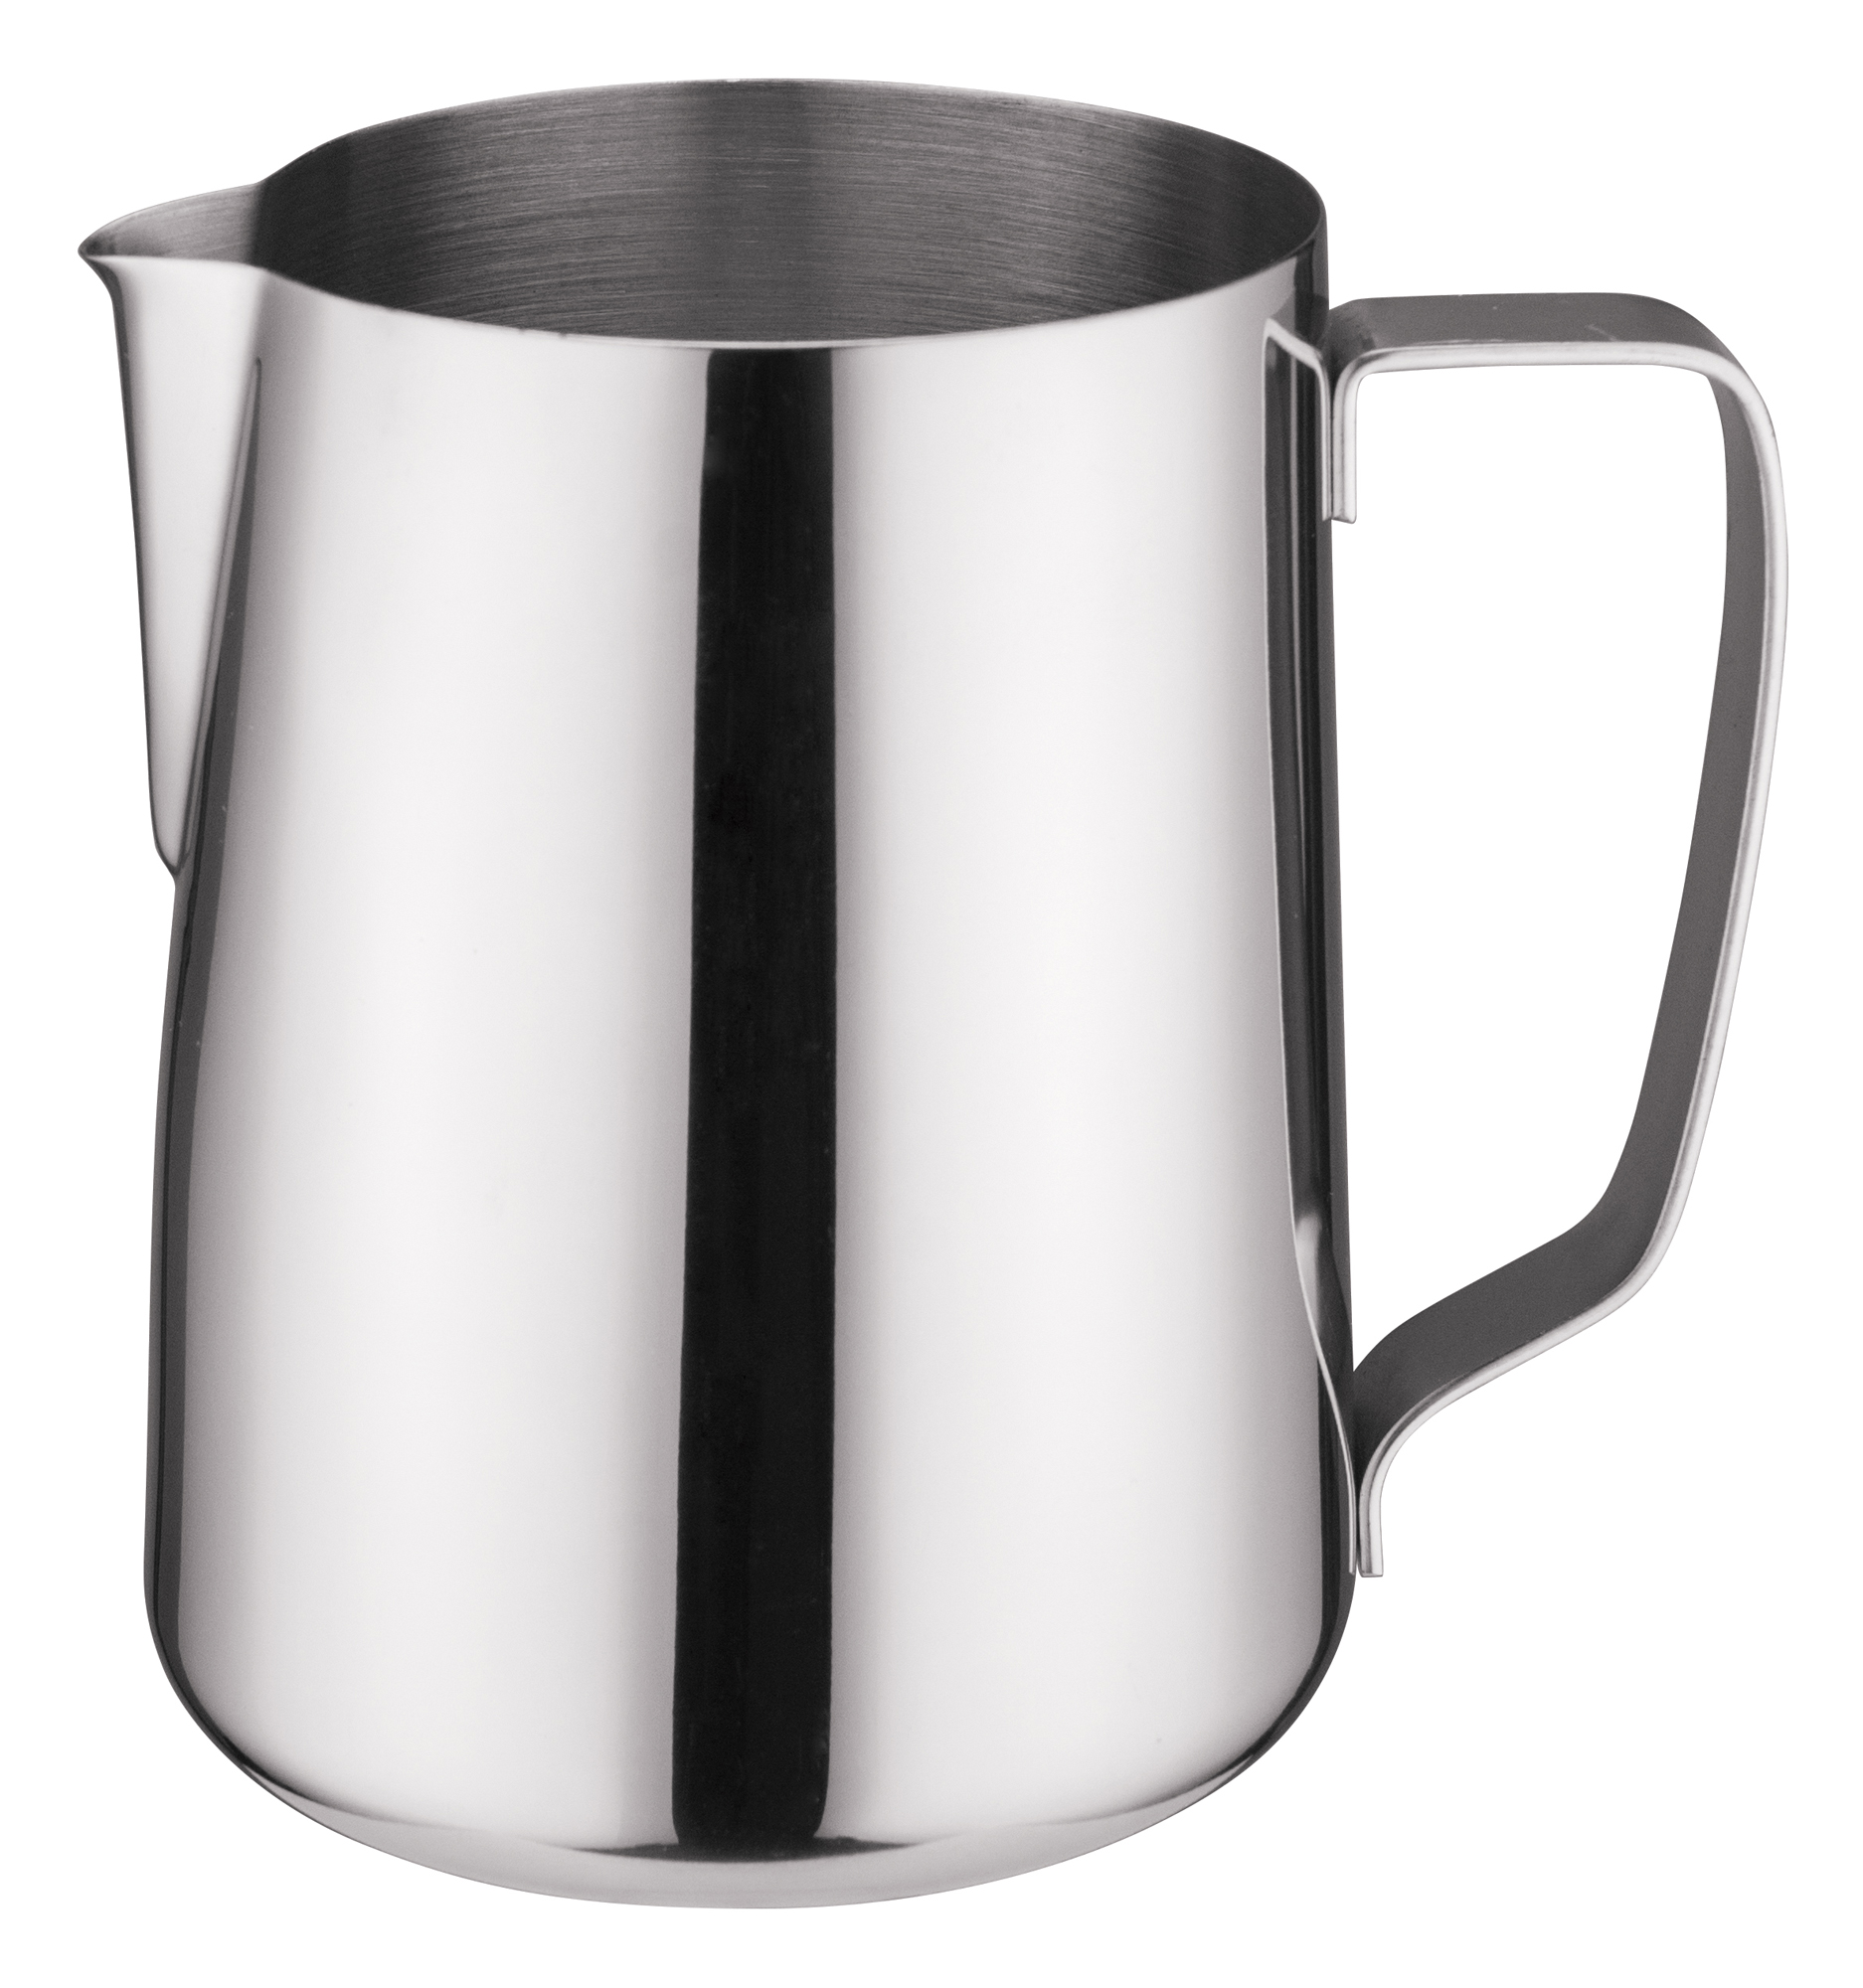 Winco WP-66 pitchers-stainless steel